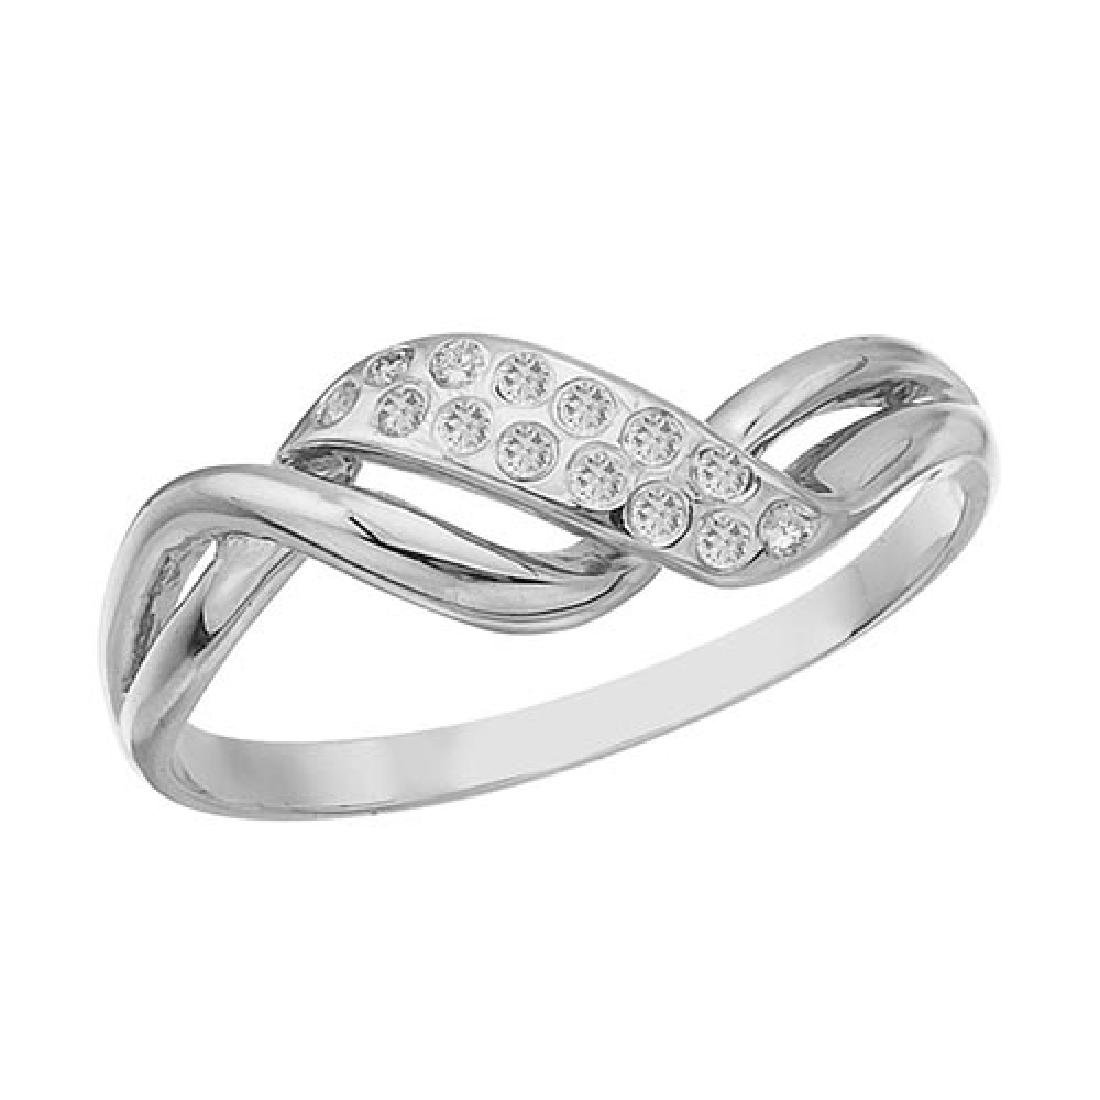 Certified 14K White Gold and Diamond Promise Ring